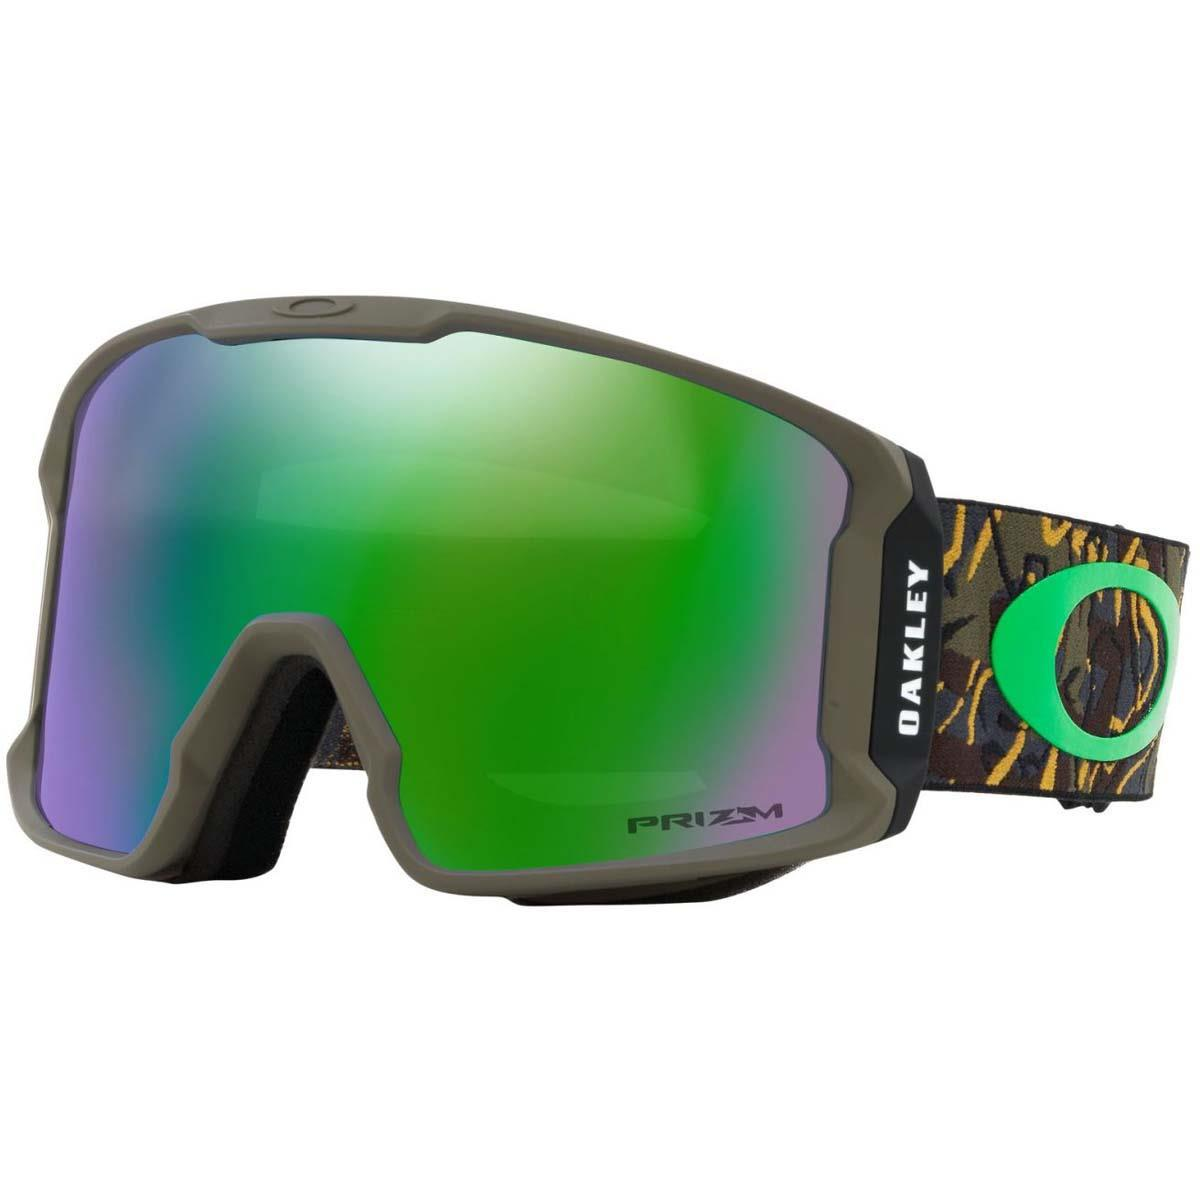 373b3733afb2 Oakley Prizm Line Miner Goggle. Loading zoom